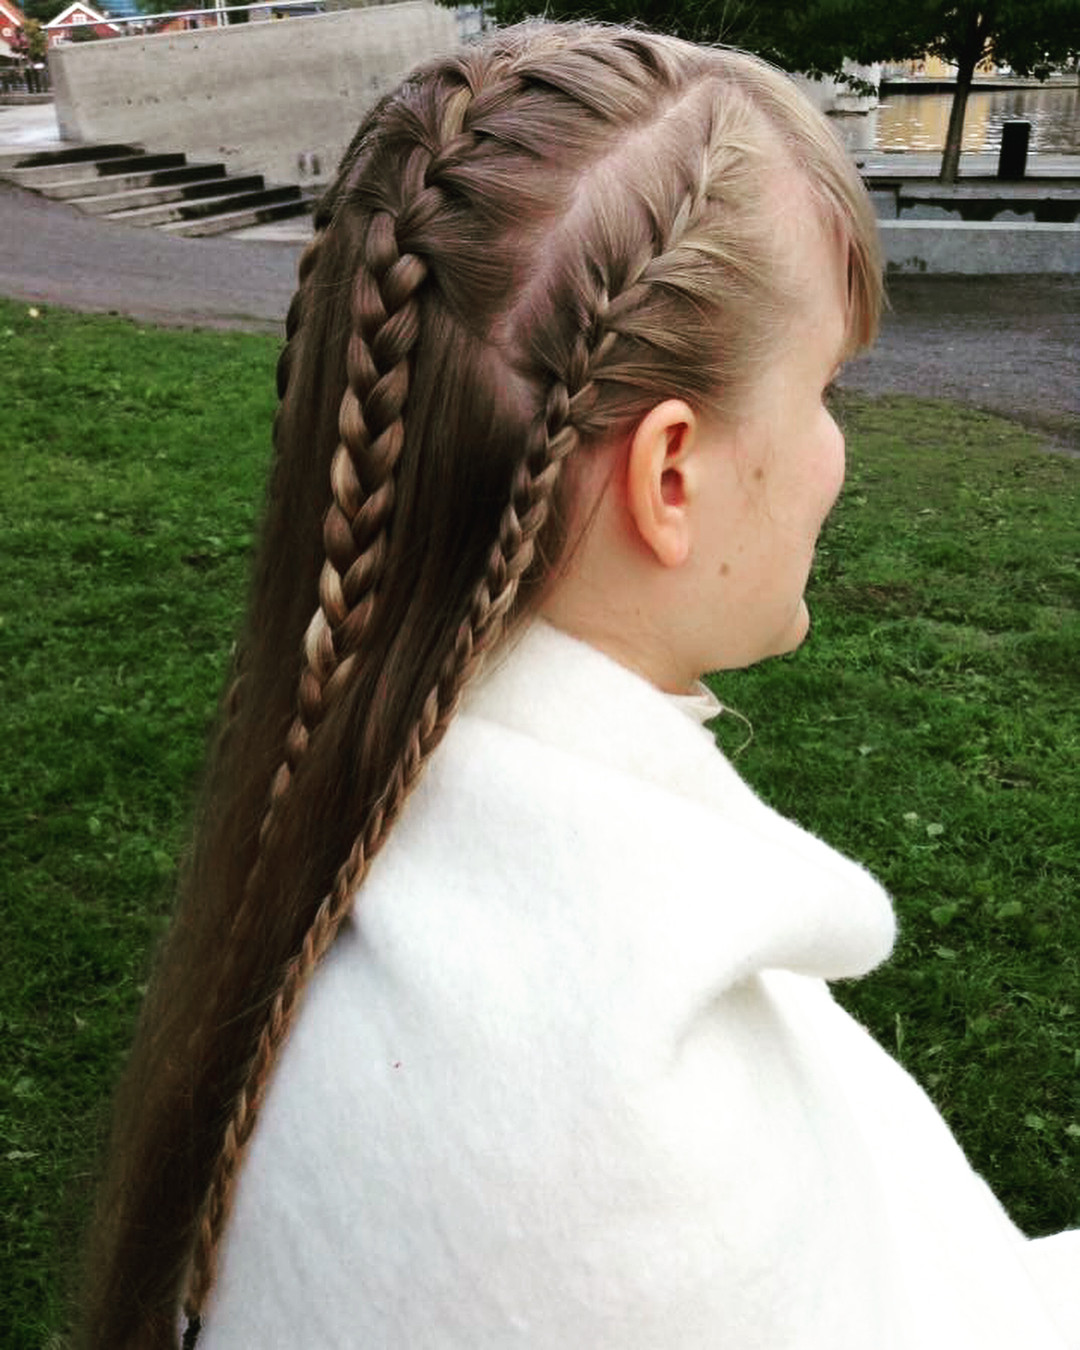 68 Medieval Hairstyles You Need To Try Right Now,womens medieval hairstyles,medieval hairstyles female short hair,medieval hairstyles female long hair,medieval scottish hairstyles